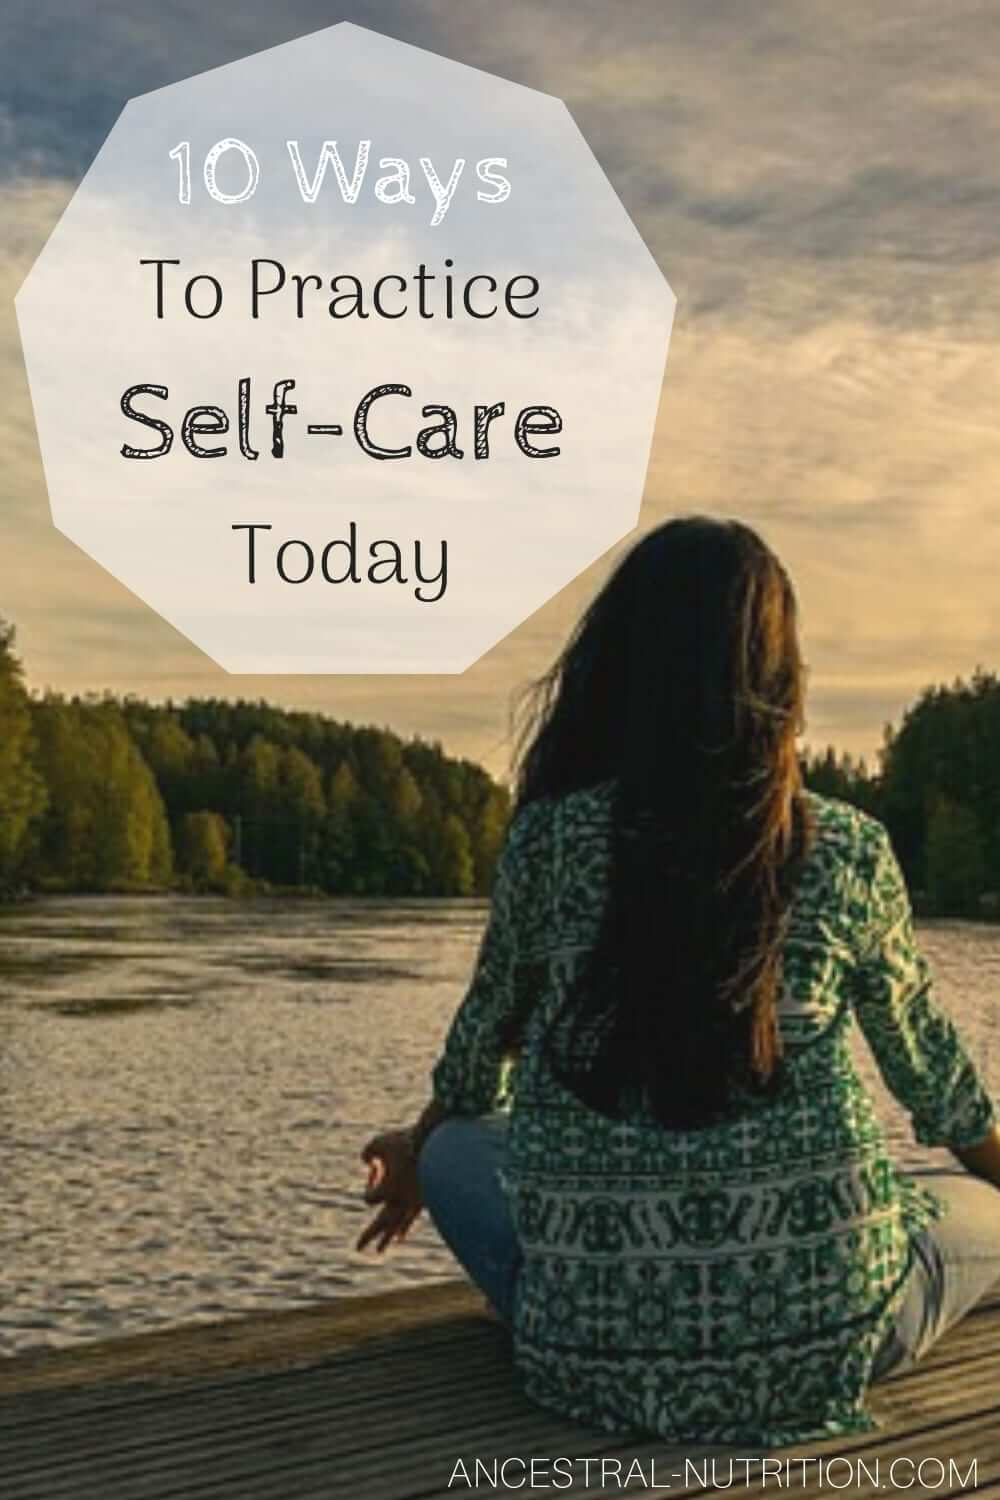 10 Simple Self-Care Activities you can do today - self-care can be simple and does not have to cost a dime! Read my tips for daily self-care #mentalhealth, #anxiety, #depression, #healthyliving, #mindfulness